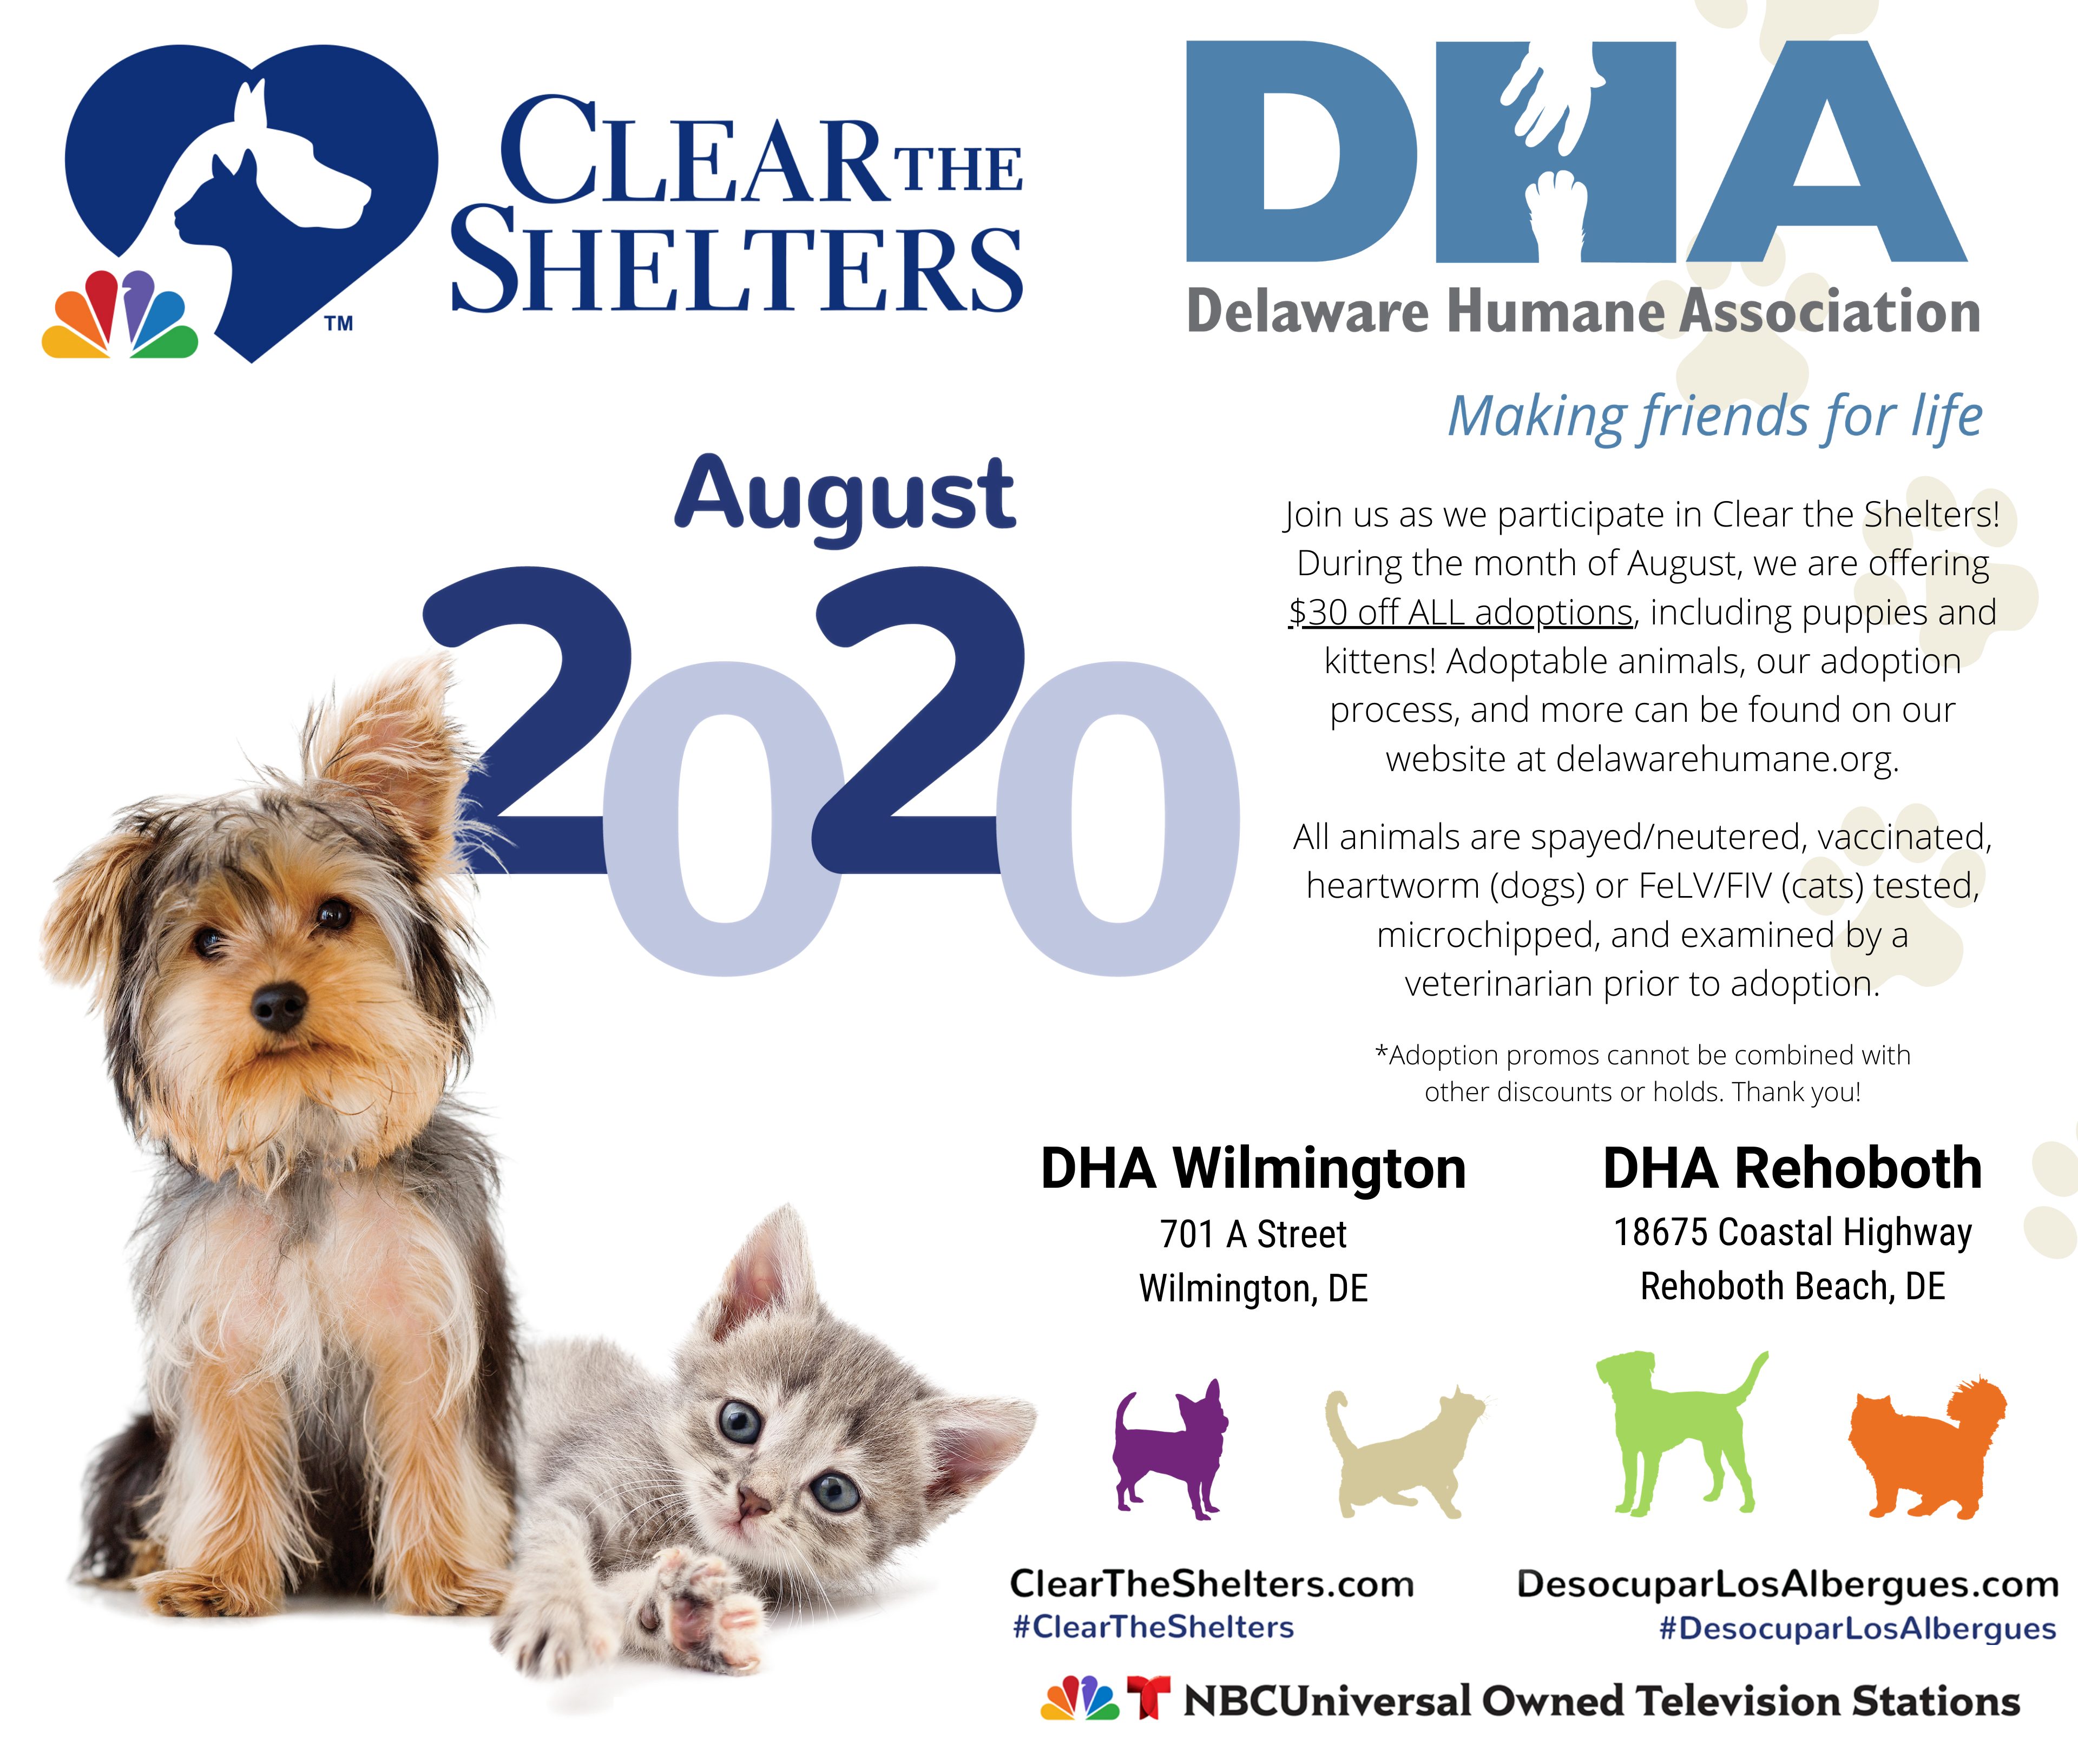 Clear The Shelters 2020 Delaware Humane Association